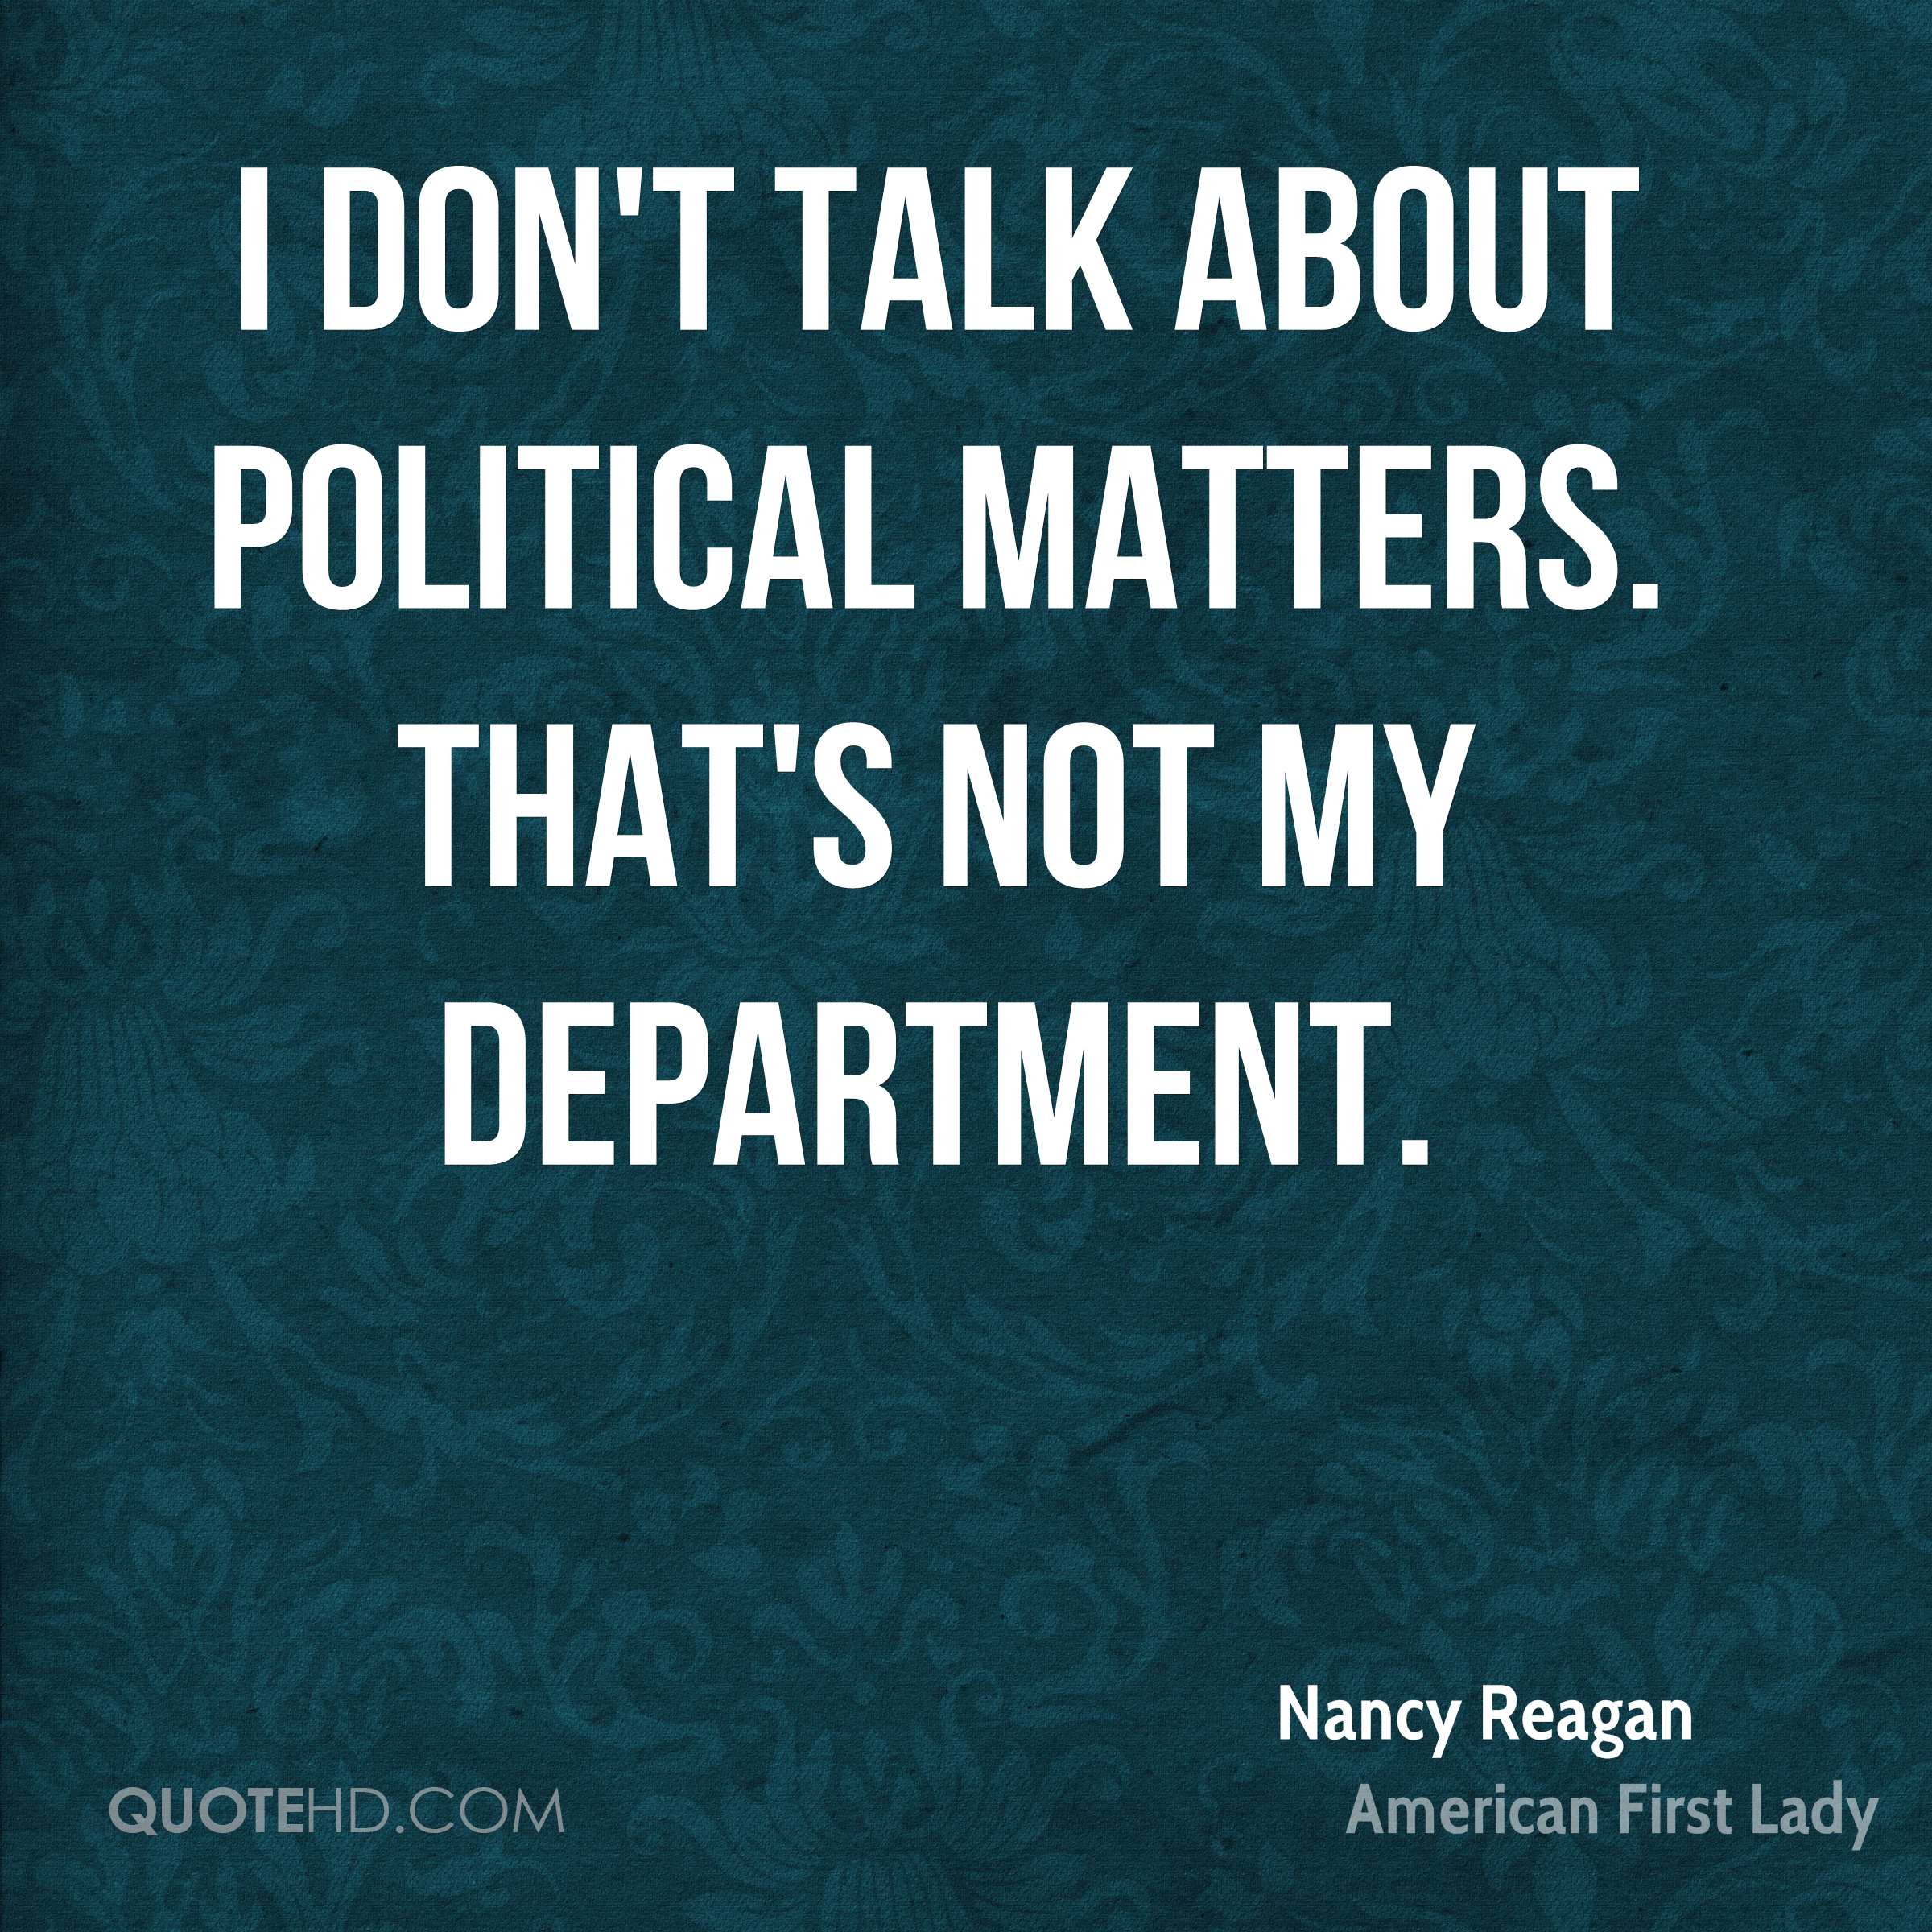 I don't talk about political matters. That's not my department.